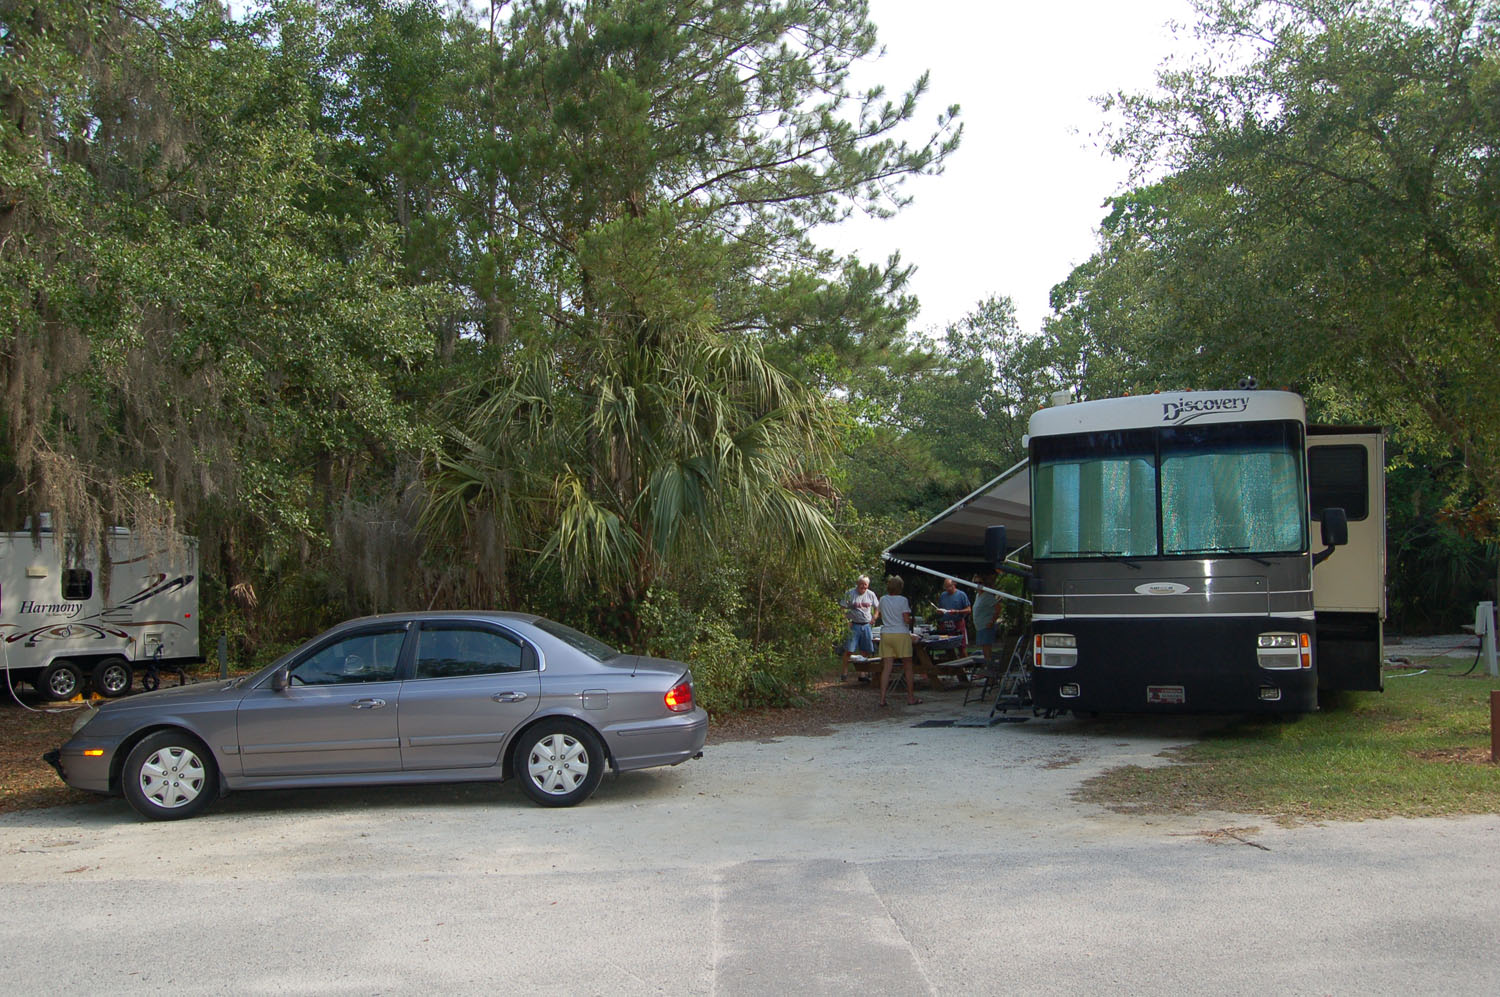 Image of campsite #15 at the Campground at James Island County Park